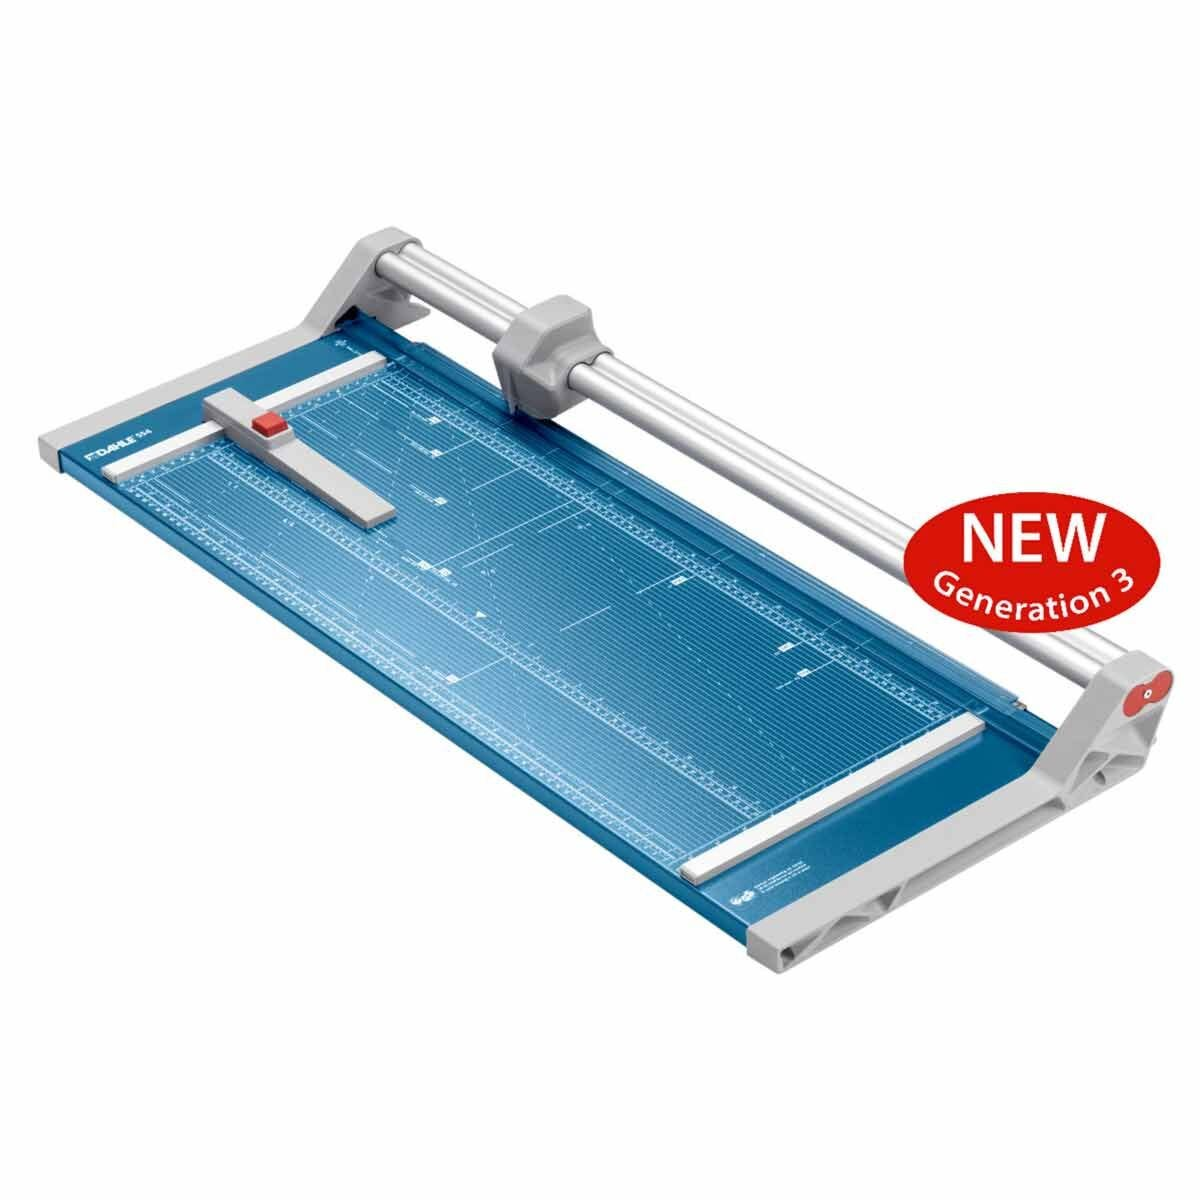 Dahle A2 Pro Rotary Trimmer 720mm Cutting Length